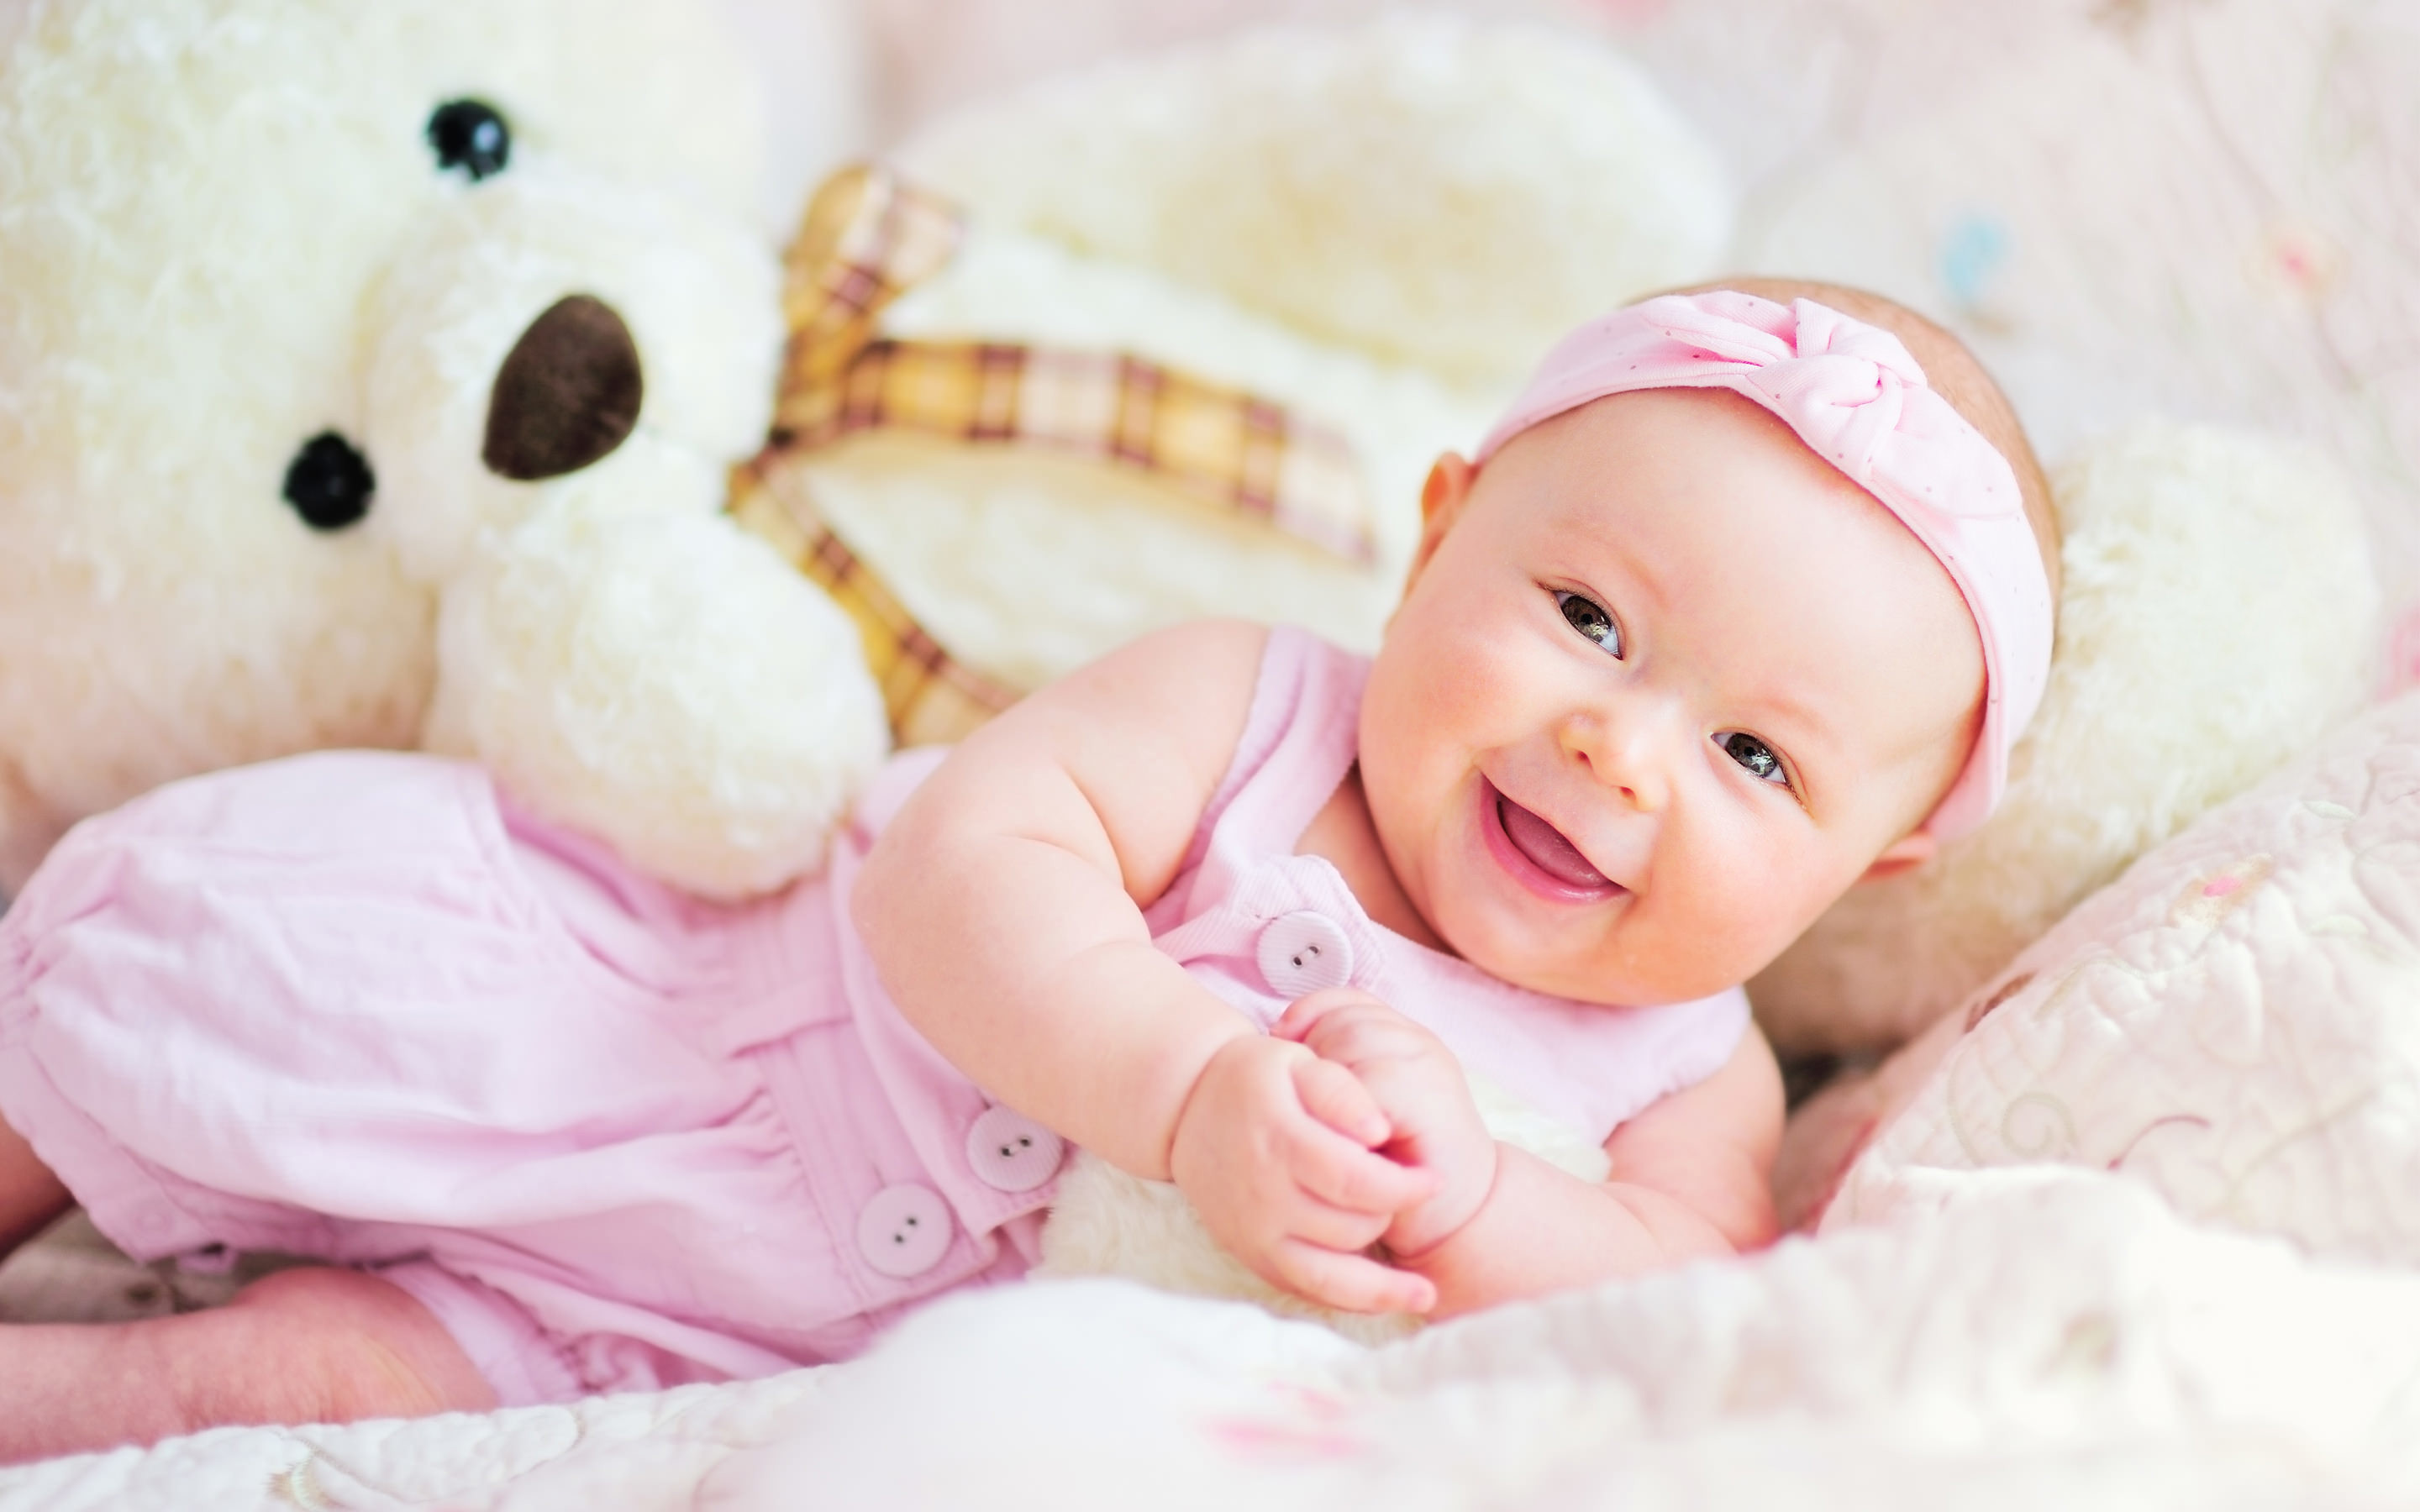 download images of cute baby